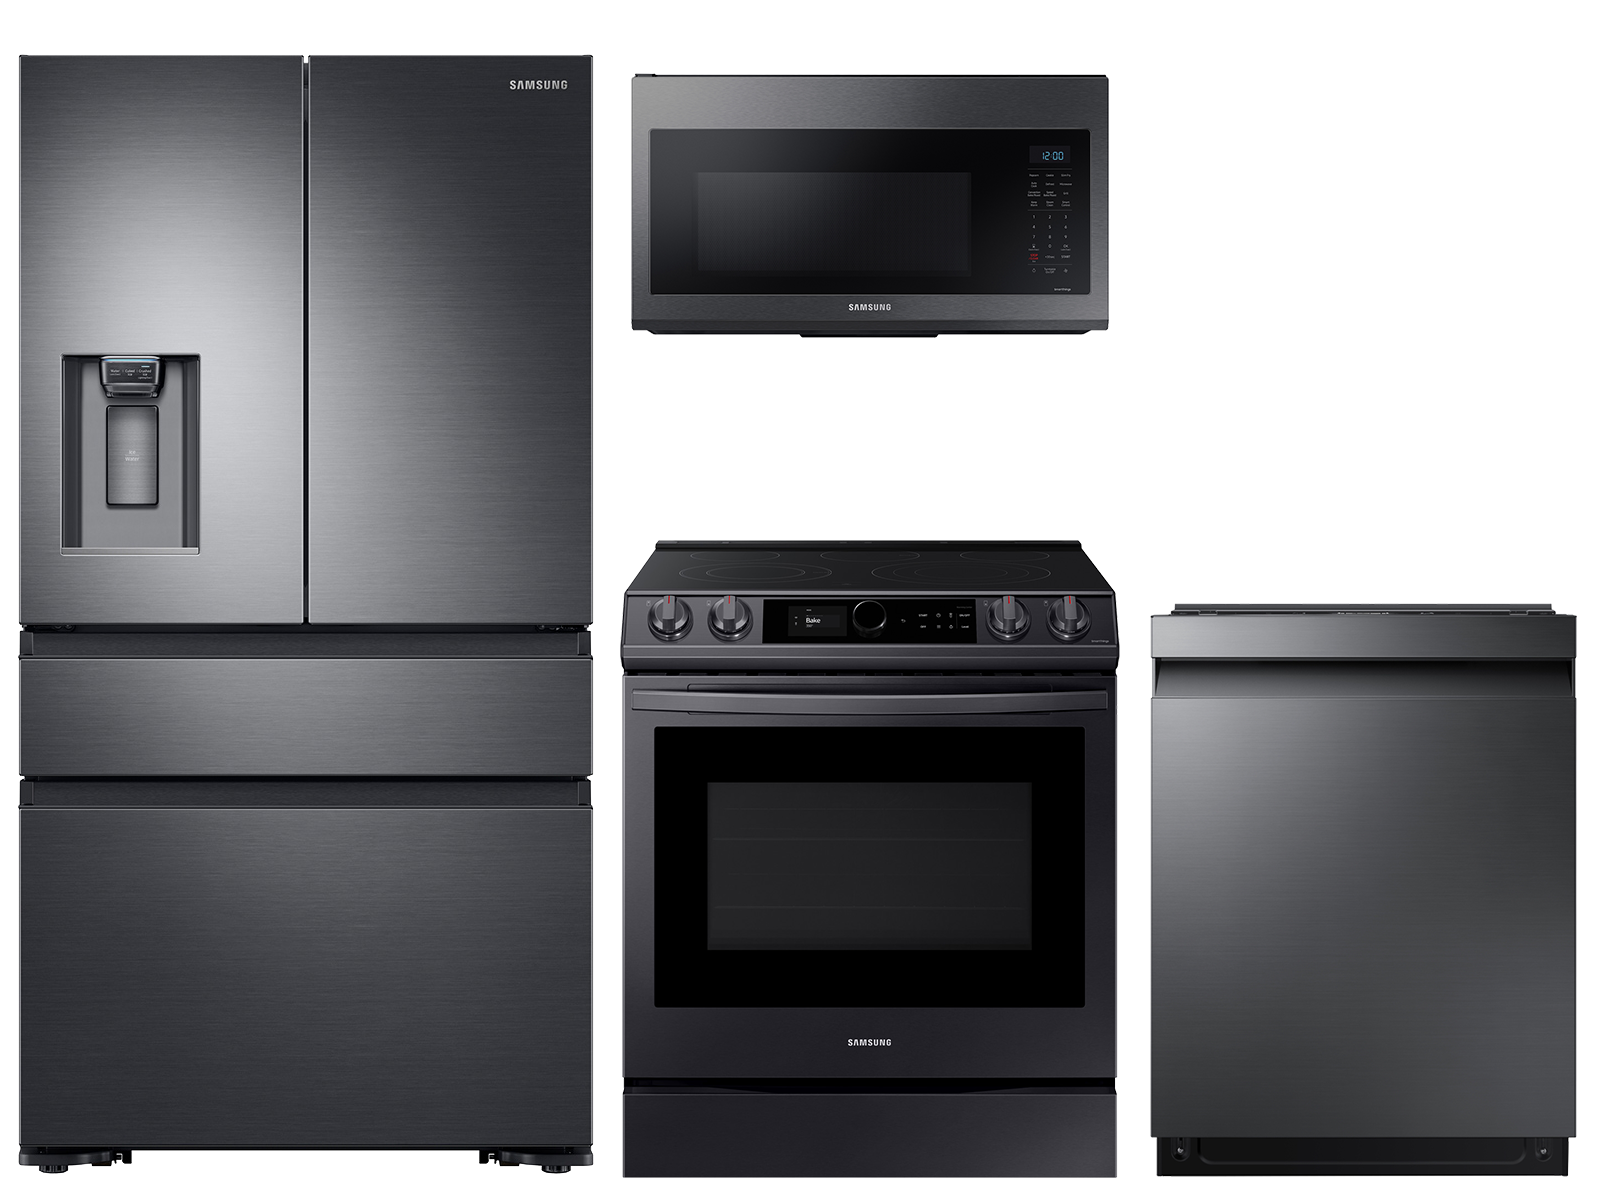 23 cu. ft. counter depth 4-door refrigerator, 6.3 cu. ft. electric range, microwave and 42 dBA dishwasher package